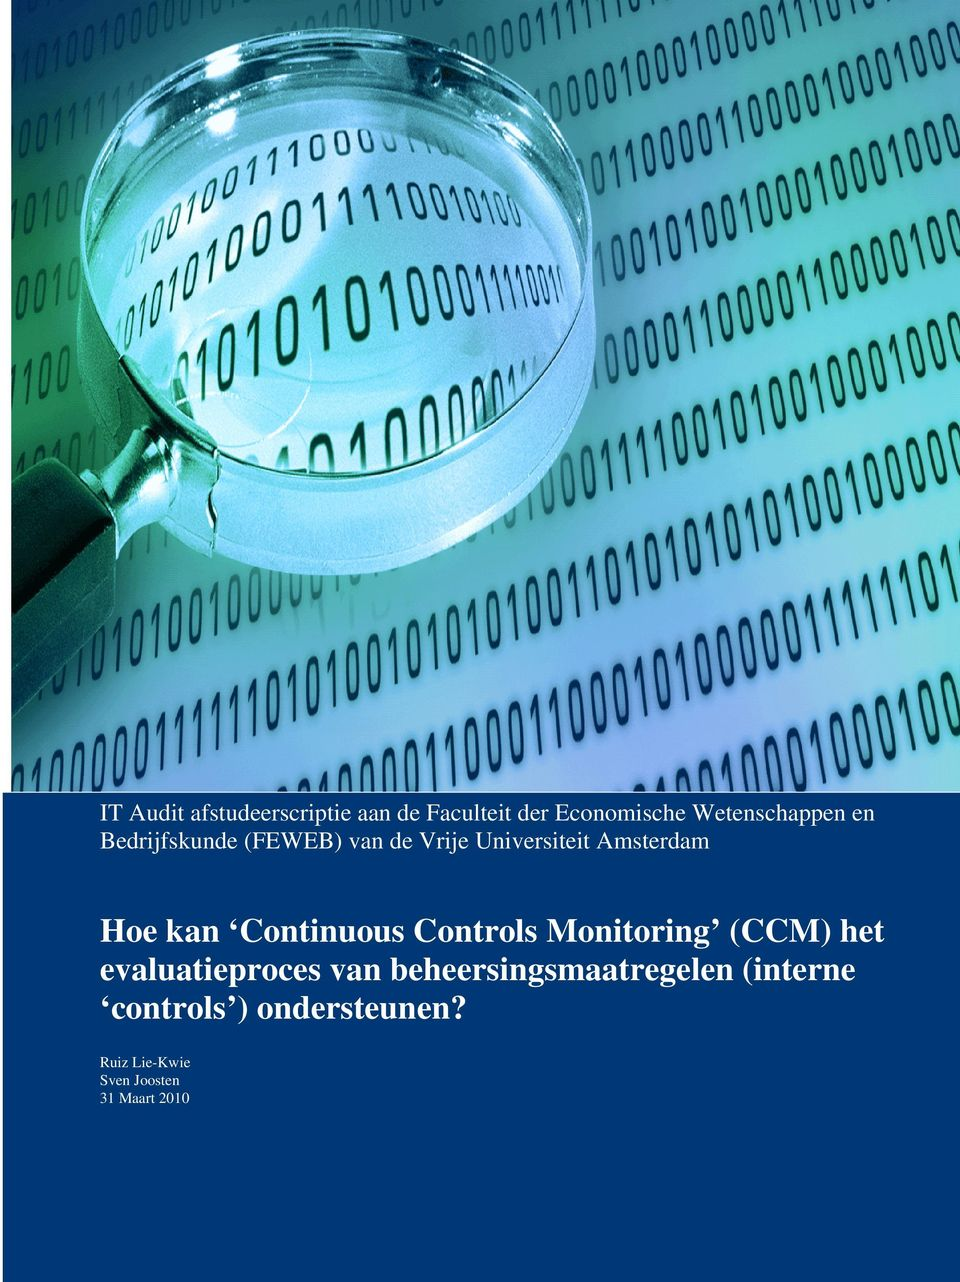 Continuous Controls Monitoring (CCM) het evaluatieproces van